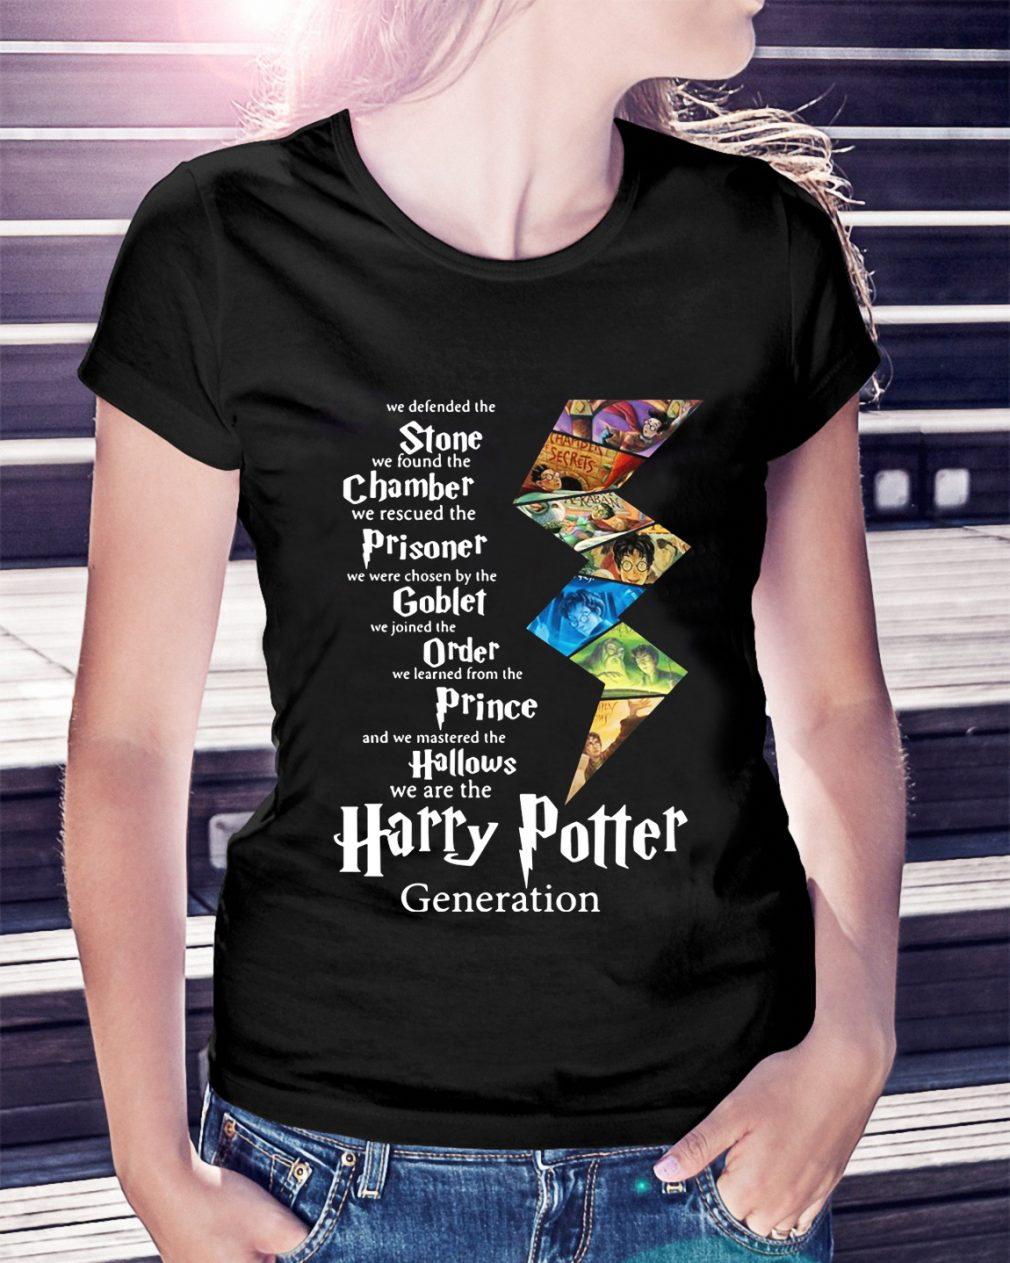 Stone Chamber Prisoner Goblet Order Prince Hallows Harry Potter Ladies Tee